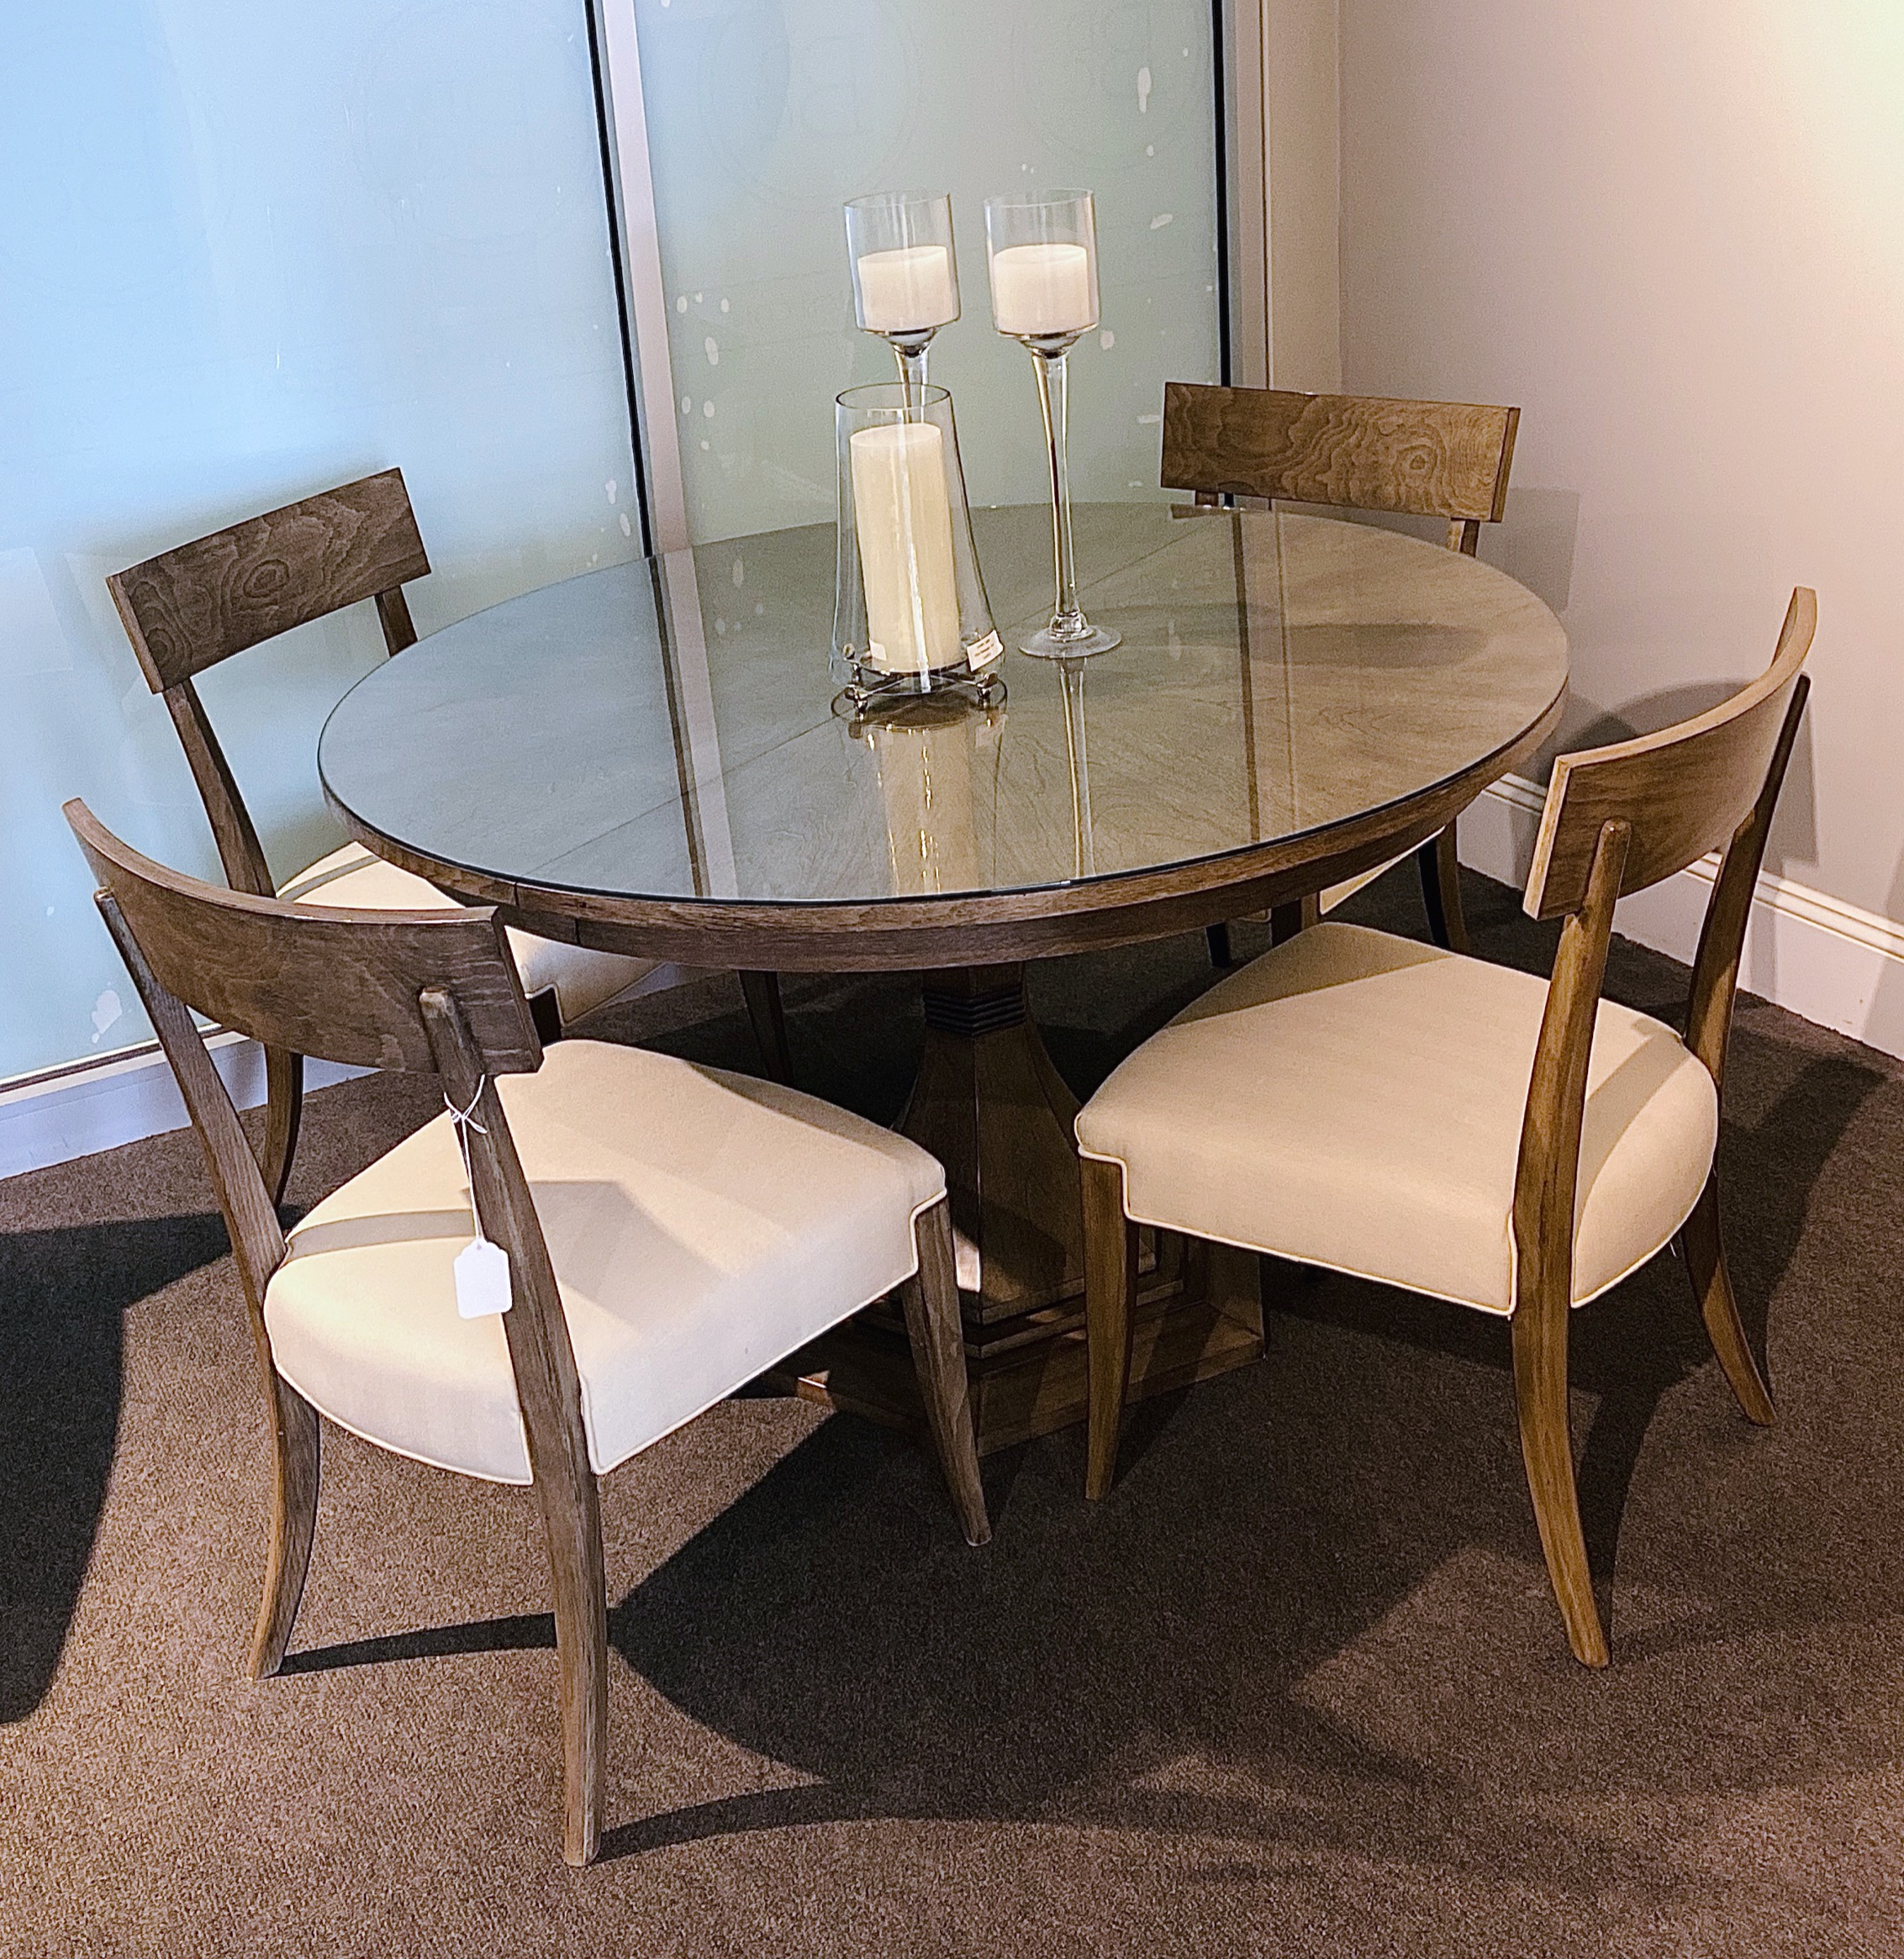 HOLD - Table with leaf & 6 chairs